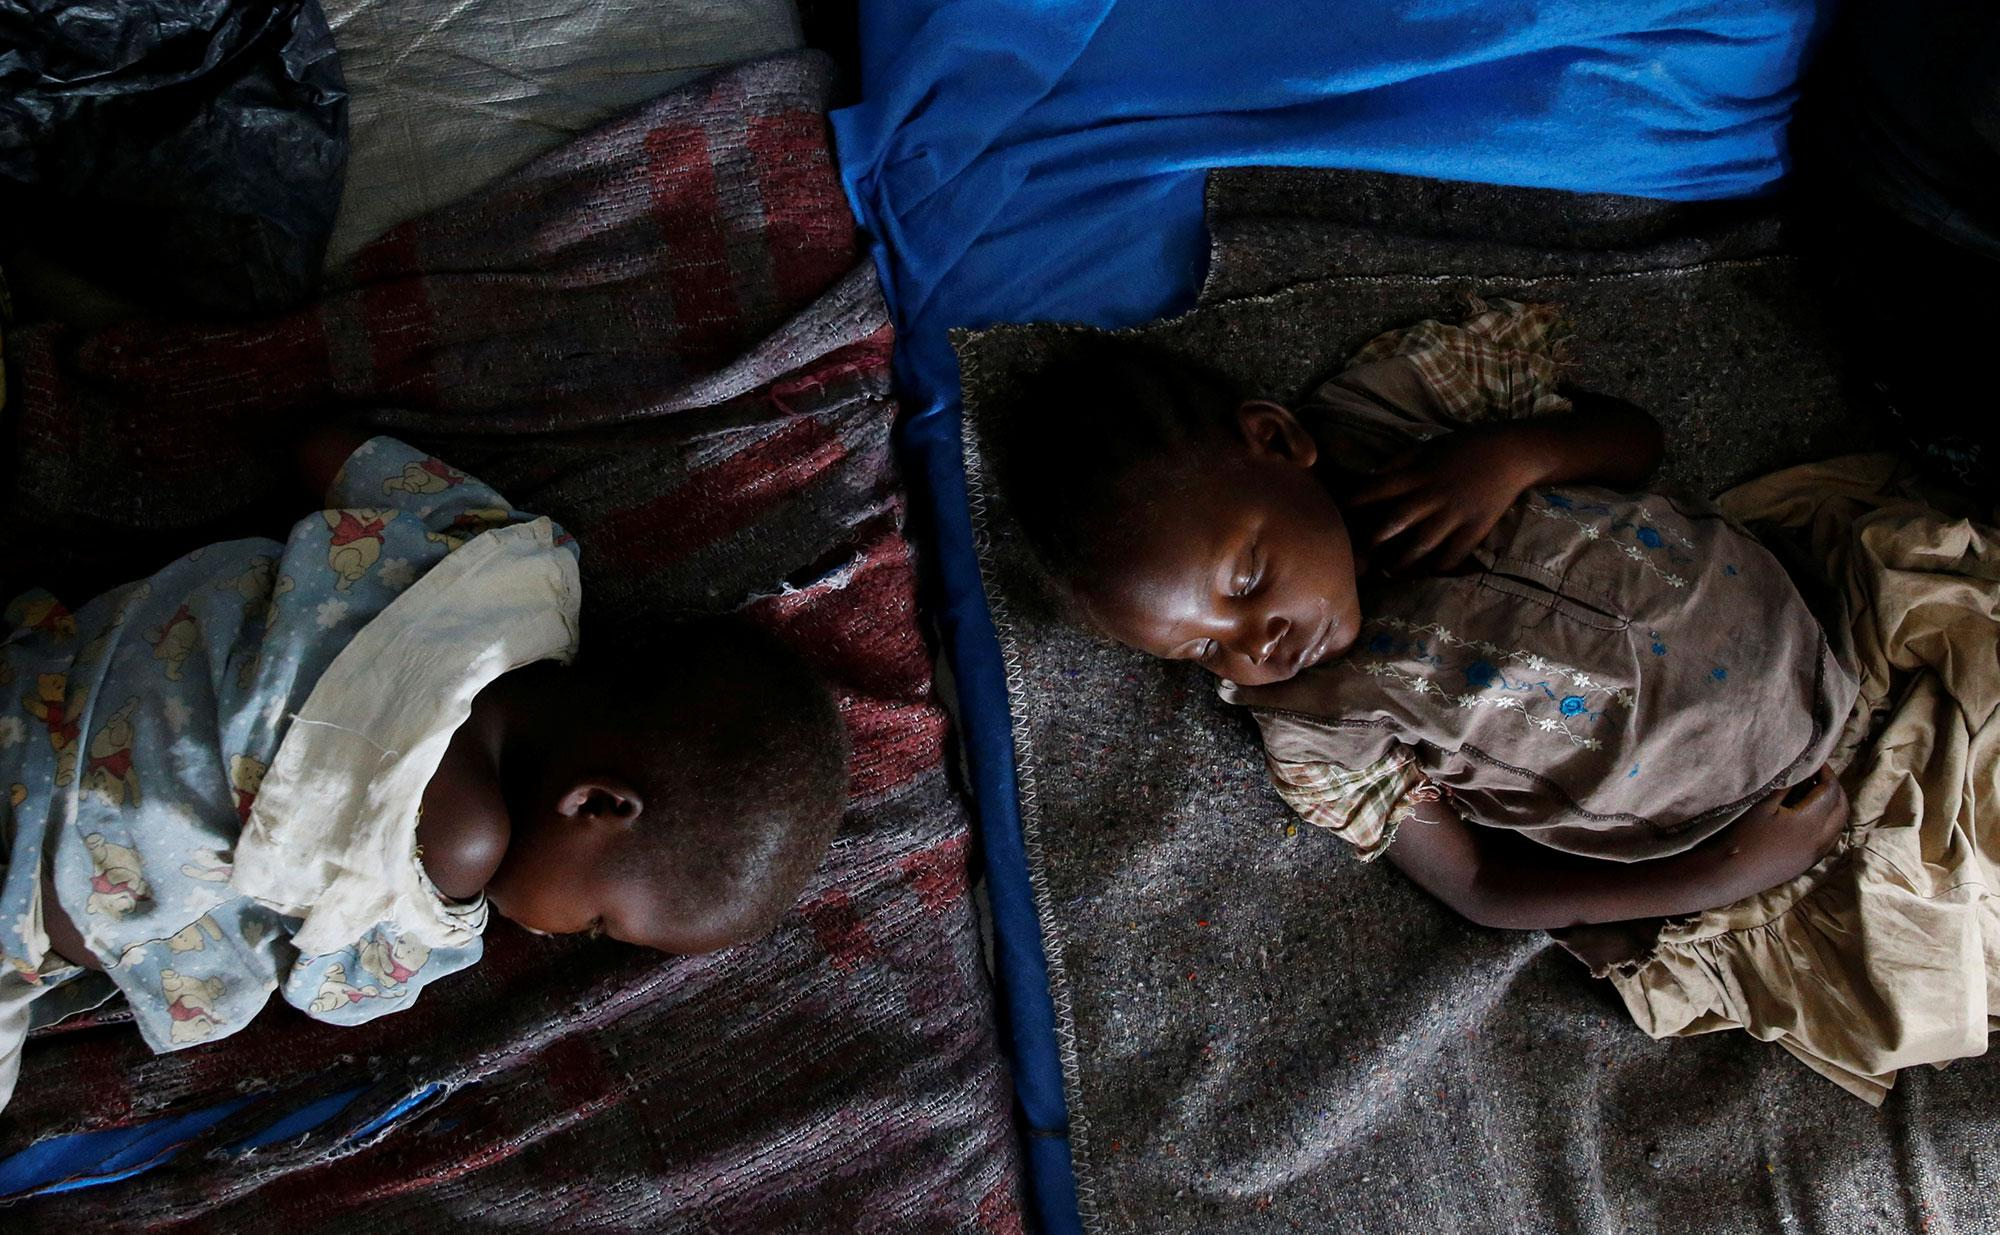 <p>Severely acute malnourished and internally displaced Congolese children wait to receive medical attention at the Tshiamala general referral hospital of Mwene Ditu in Kasai Oriental Province in the Democratic Republic of Congo, March 15, 2018. (Photo: Thomas Mukoya/Reuters) </p>